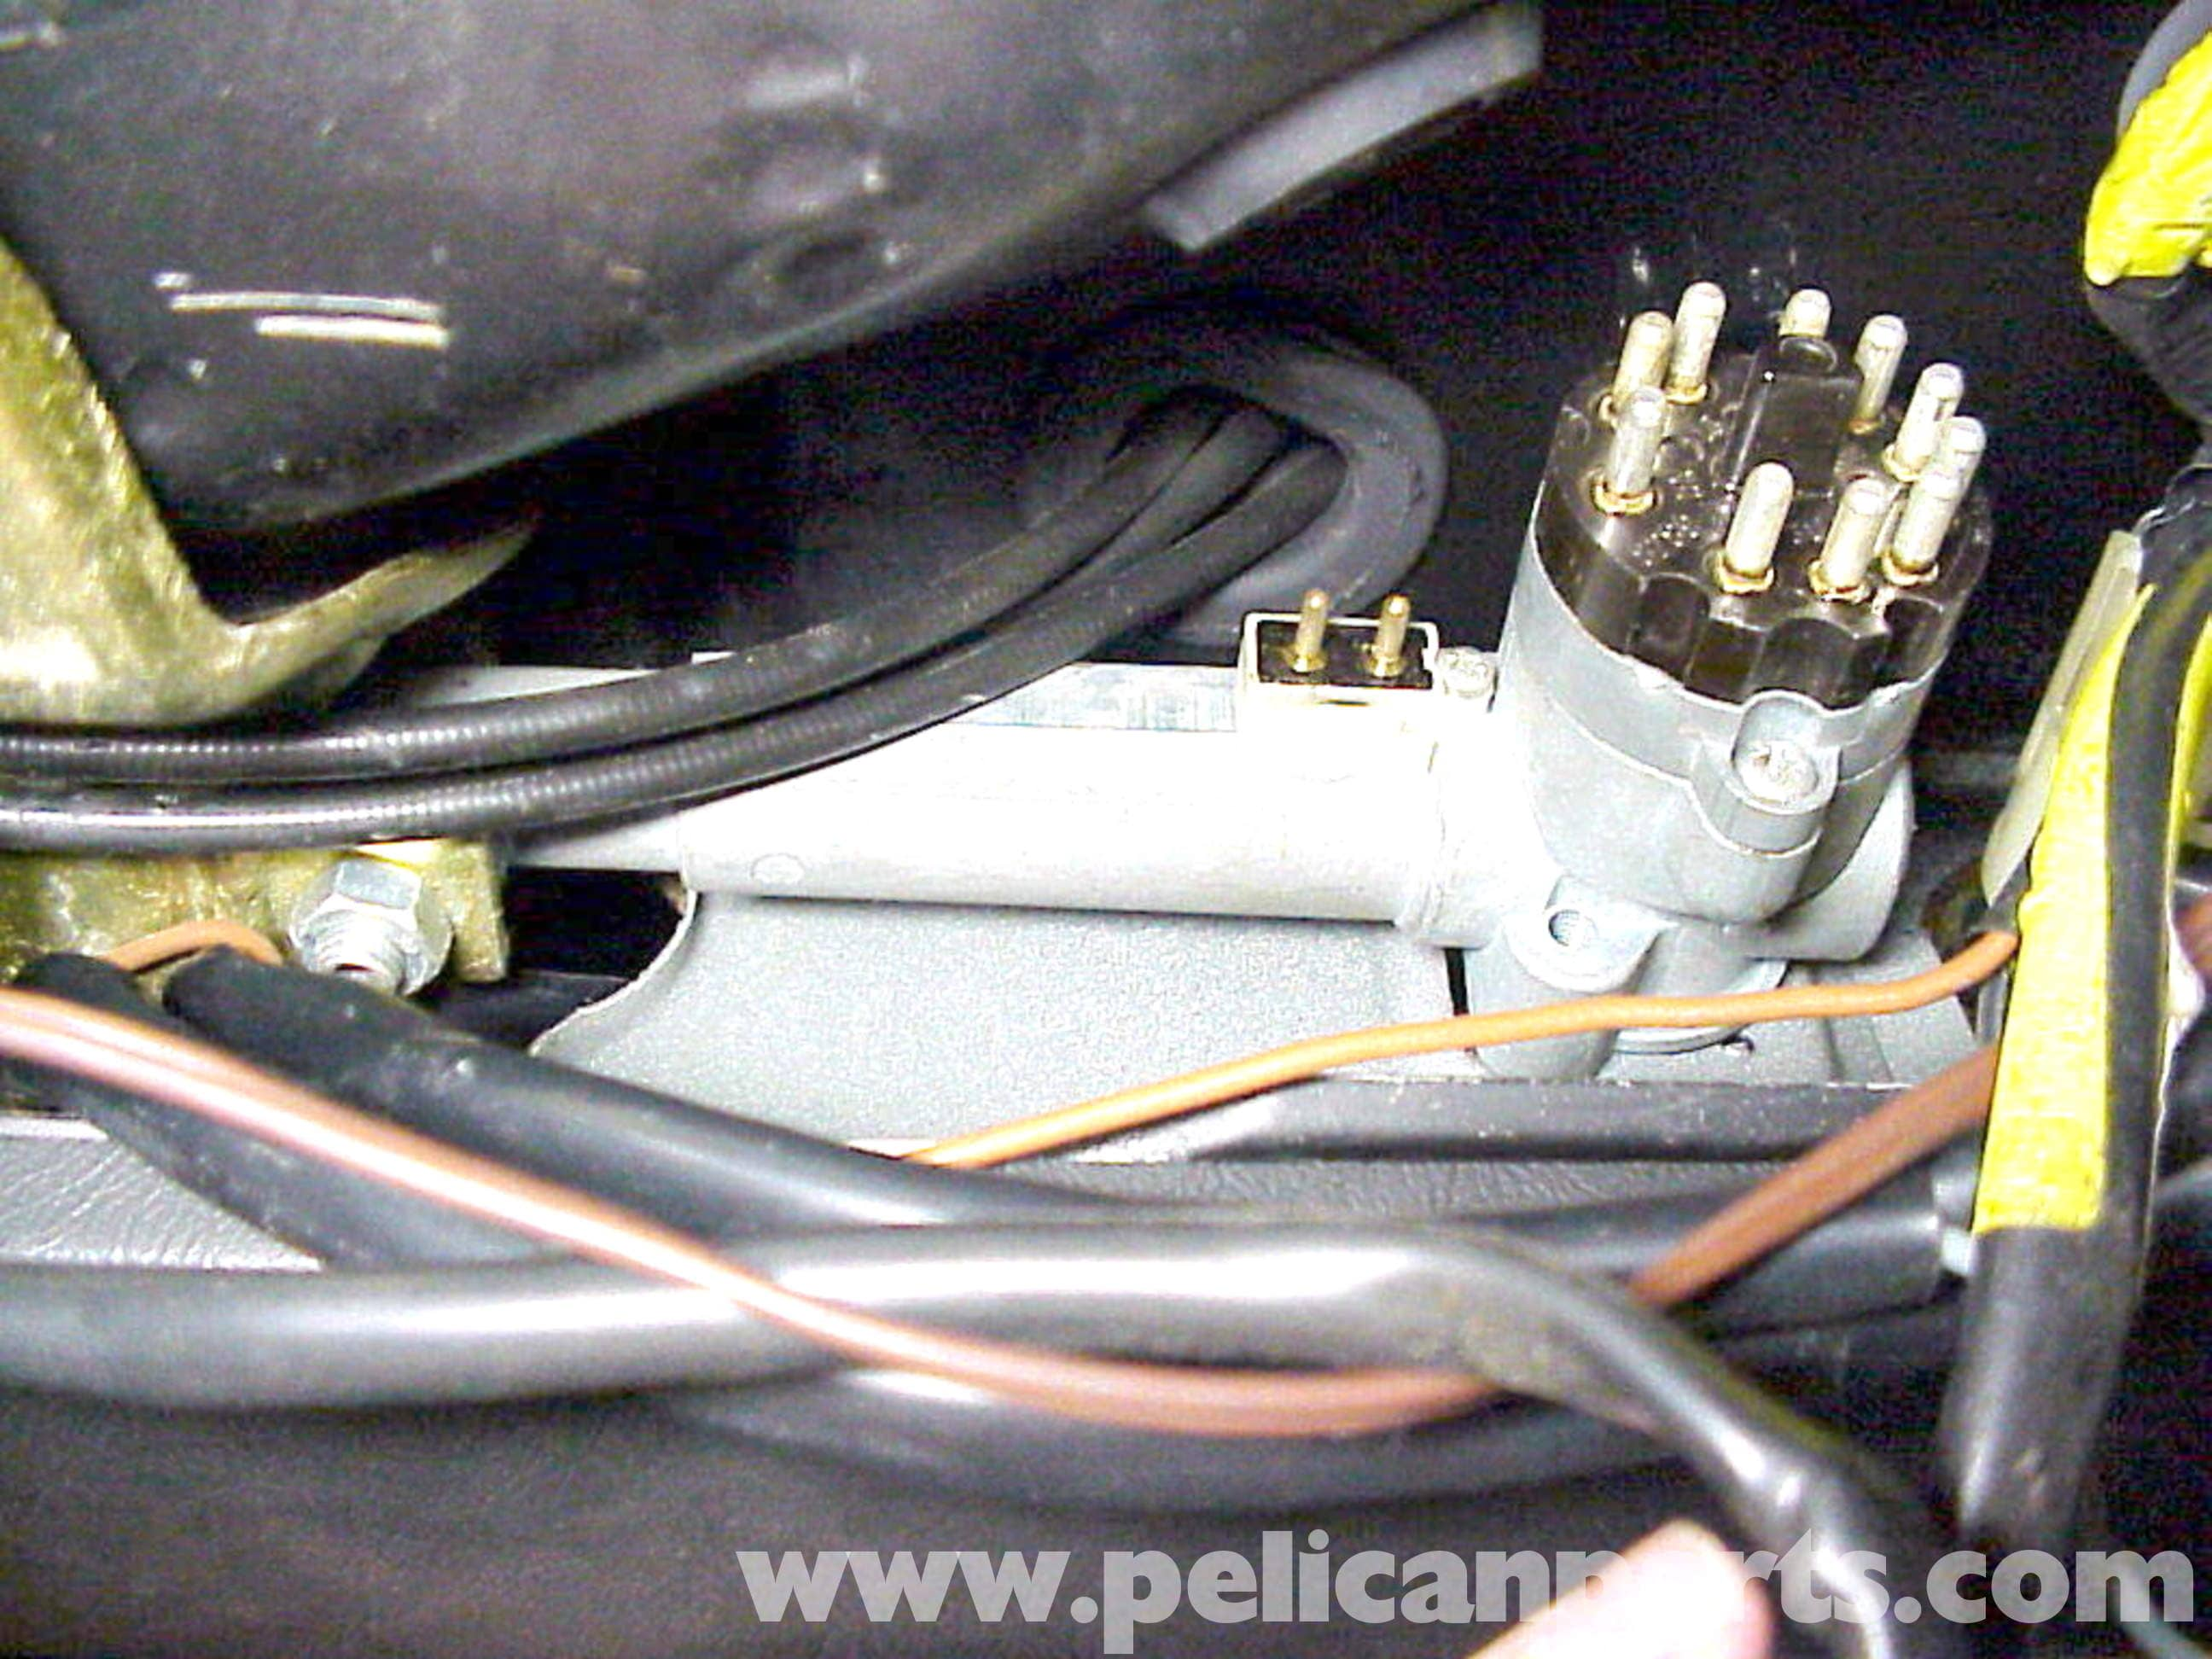 91 Porsche 911 Wiring Diagram Schematics Cj7 Large Ignition Switch Replacement 1965 89 930 Turbo 1987 924s